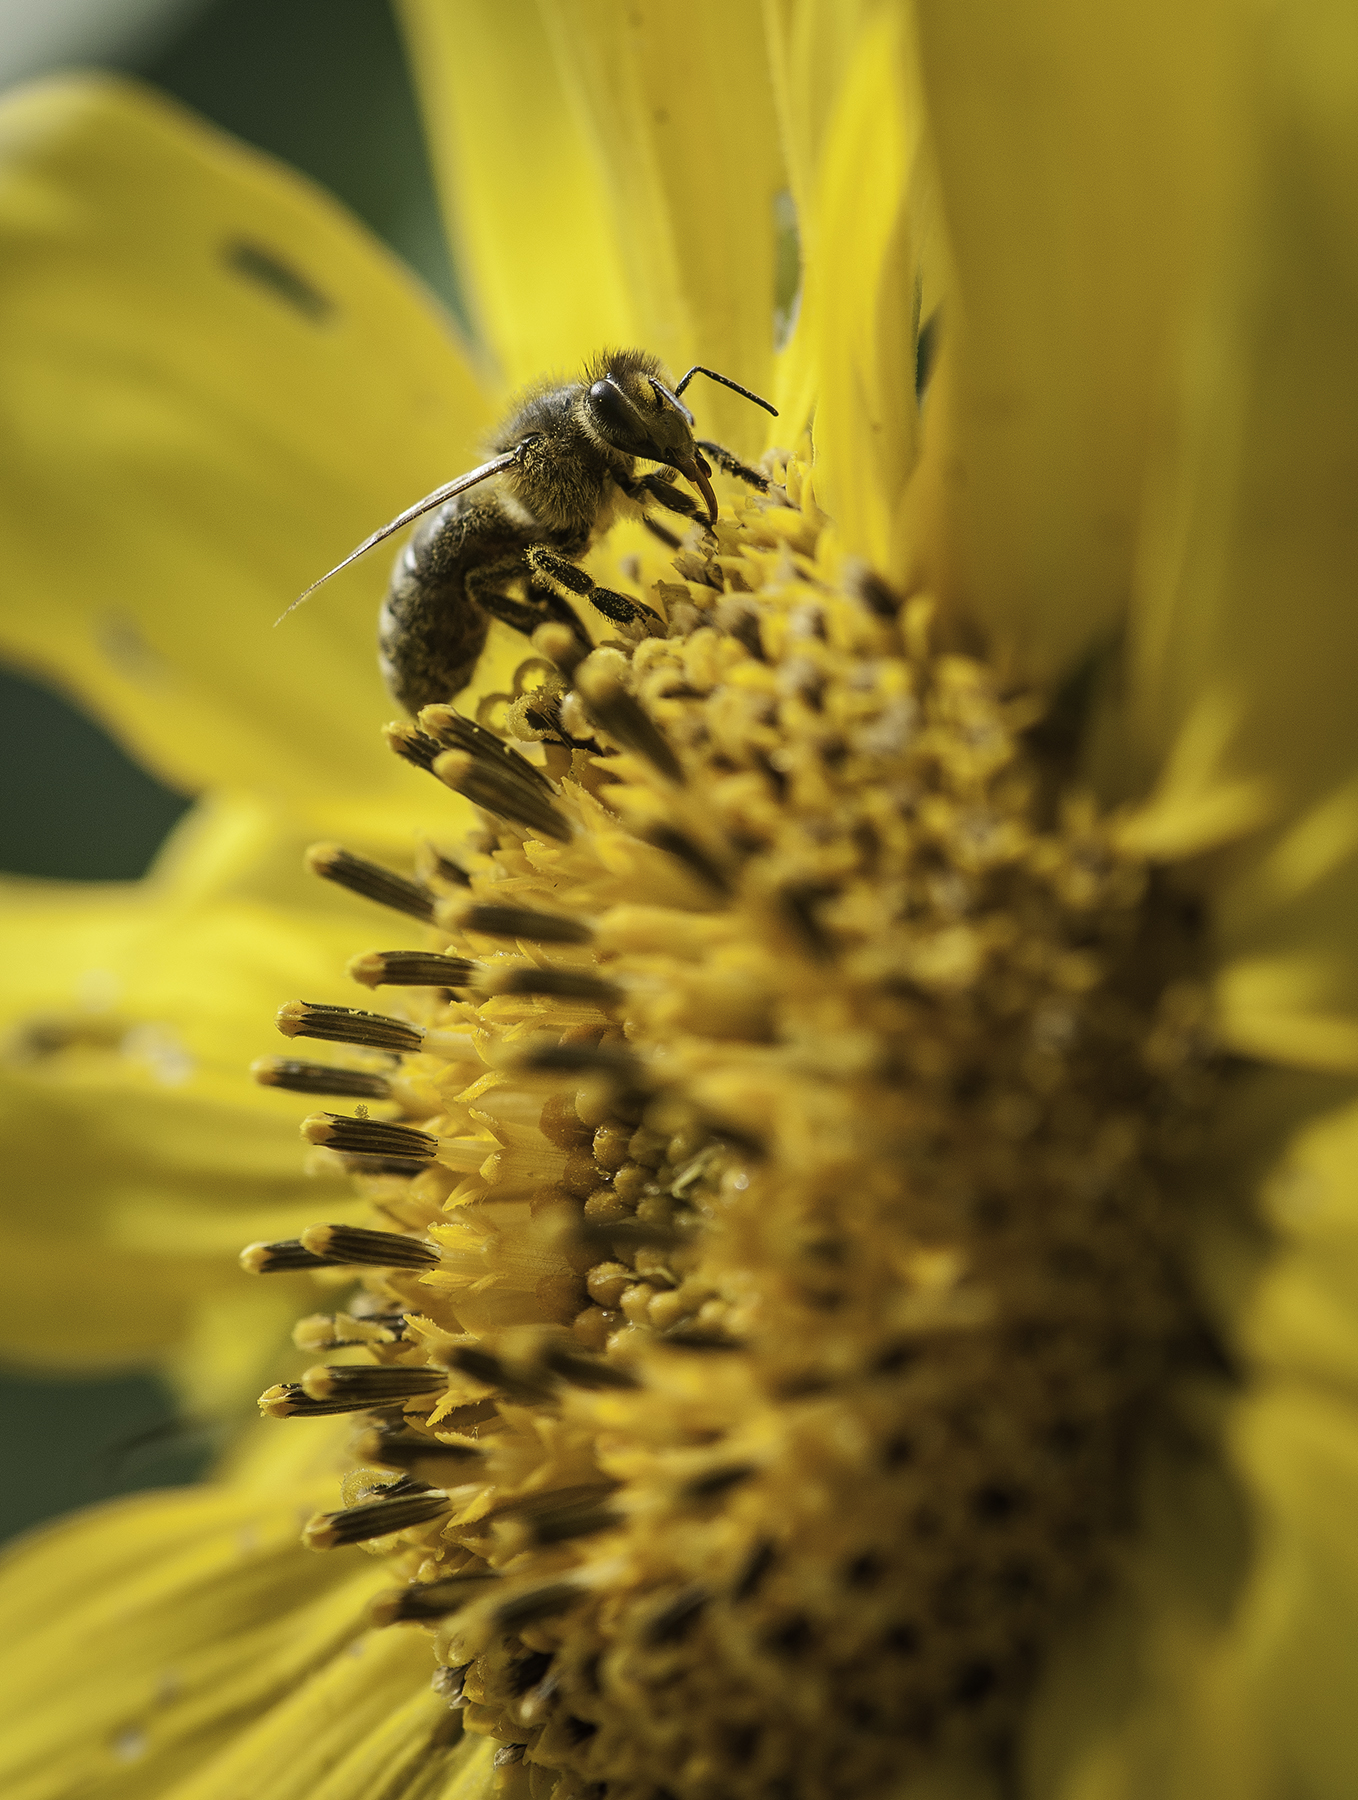 Help make bees and other pollinators feel at home in your garden by creating habitats in which they can nest.